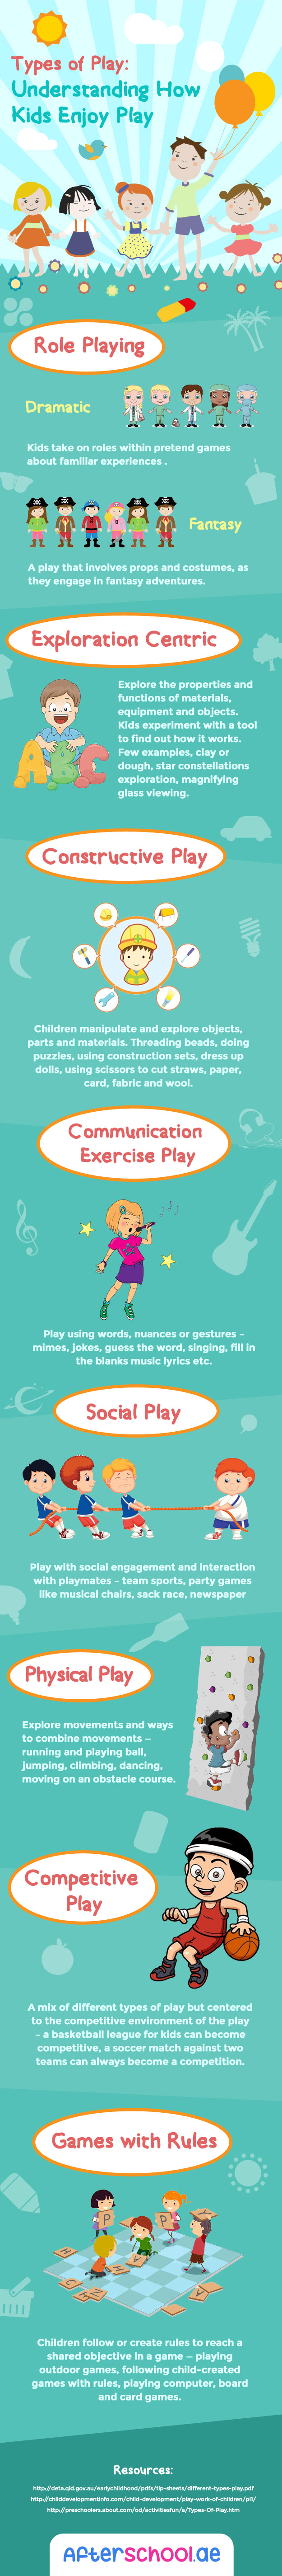 Different Types of Kids Play